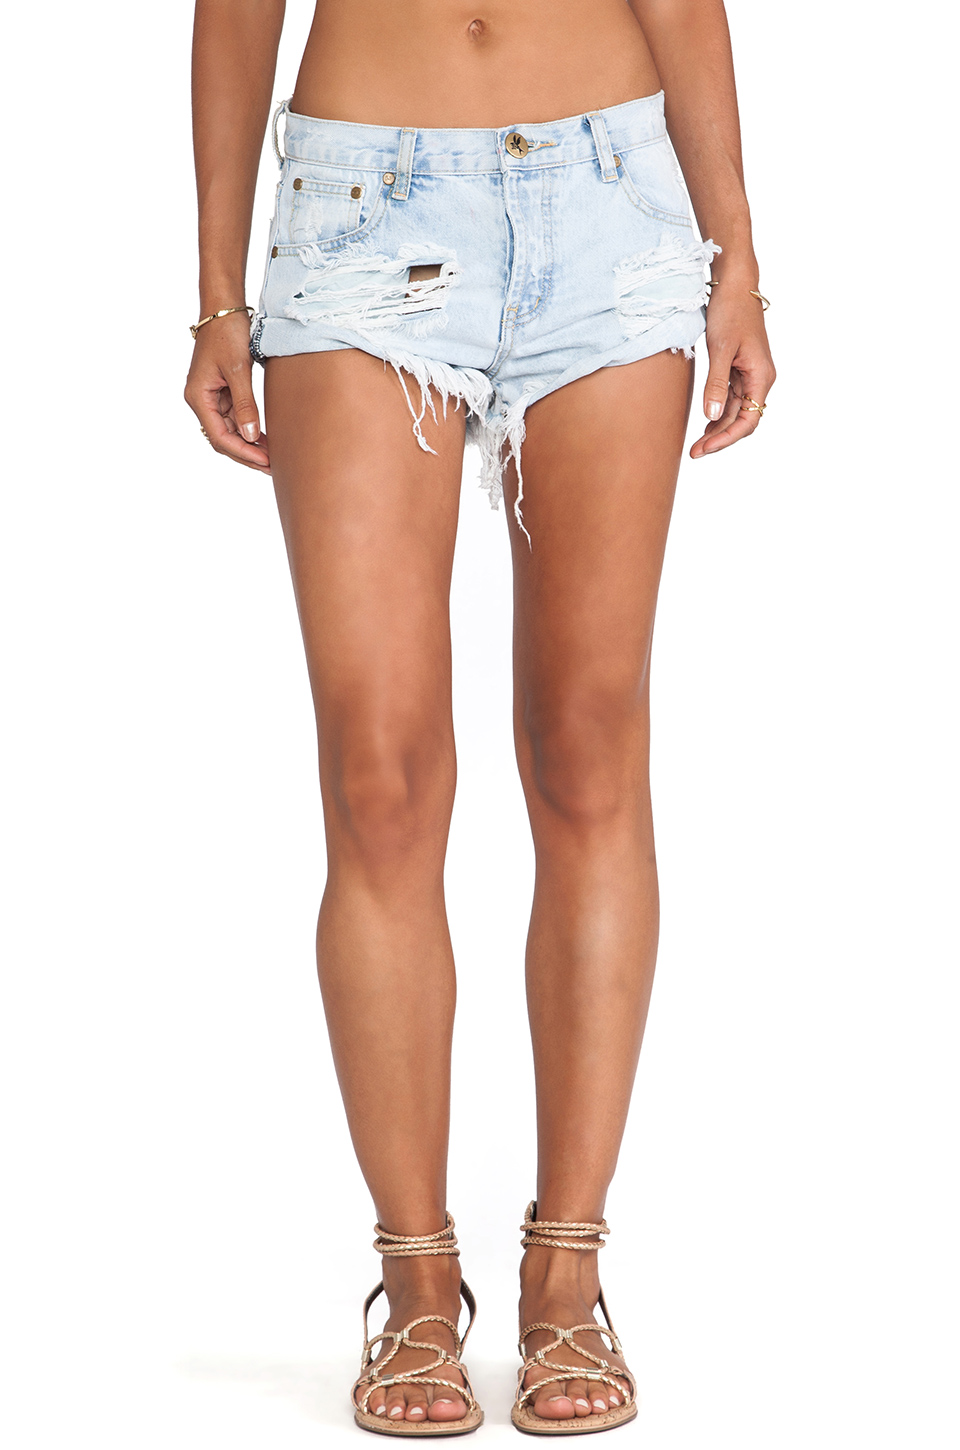 One Teaspoon Bandits Jean Shorts in Brando from REVOLVEclothing.com